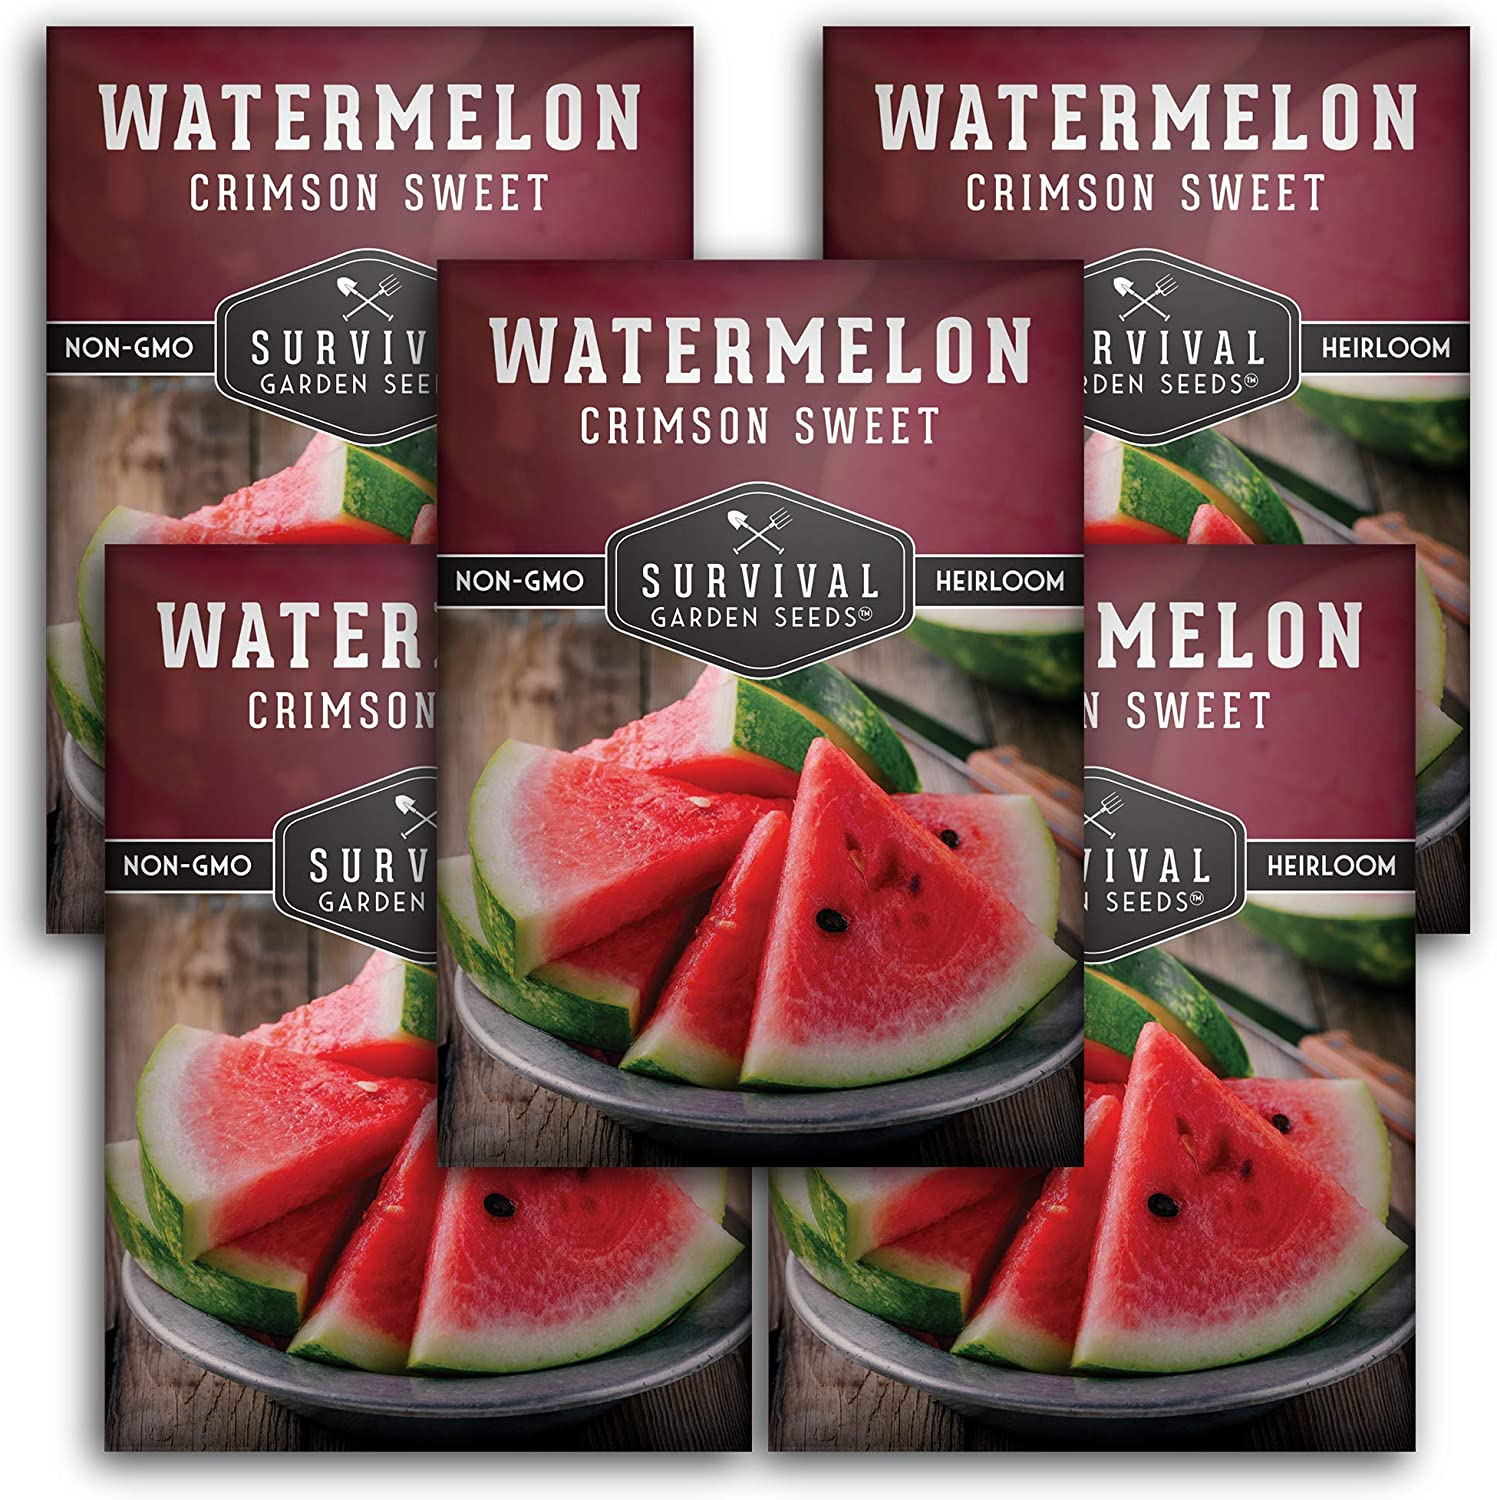 Survival Garden Seeds - Crimson Sweet Watermelon Seed for Planting - 5 Packets with Instructions to Plant and Grow in Your Home Vegetable Garden - Non-GMO Heirloom Variety